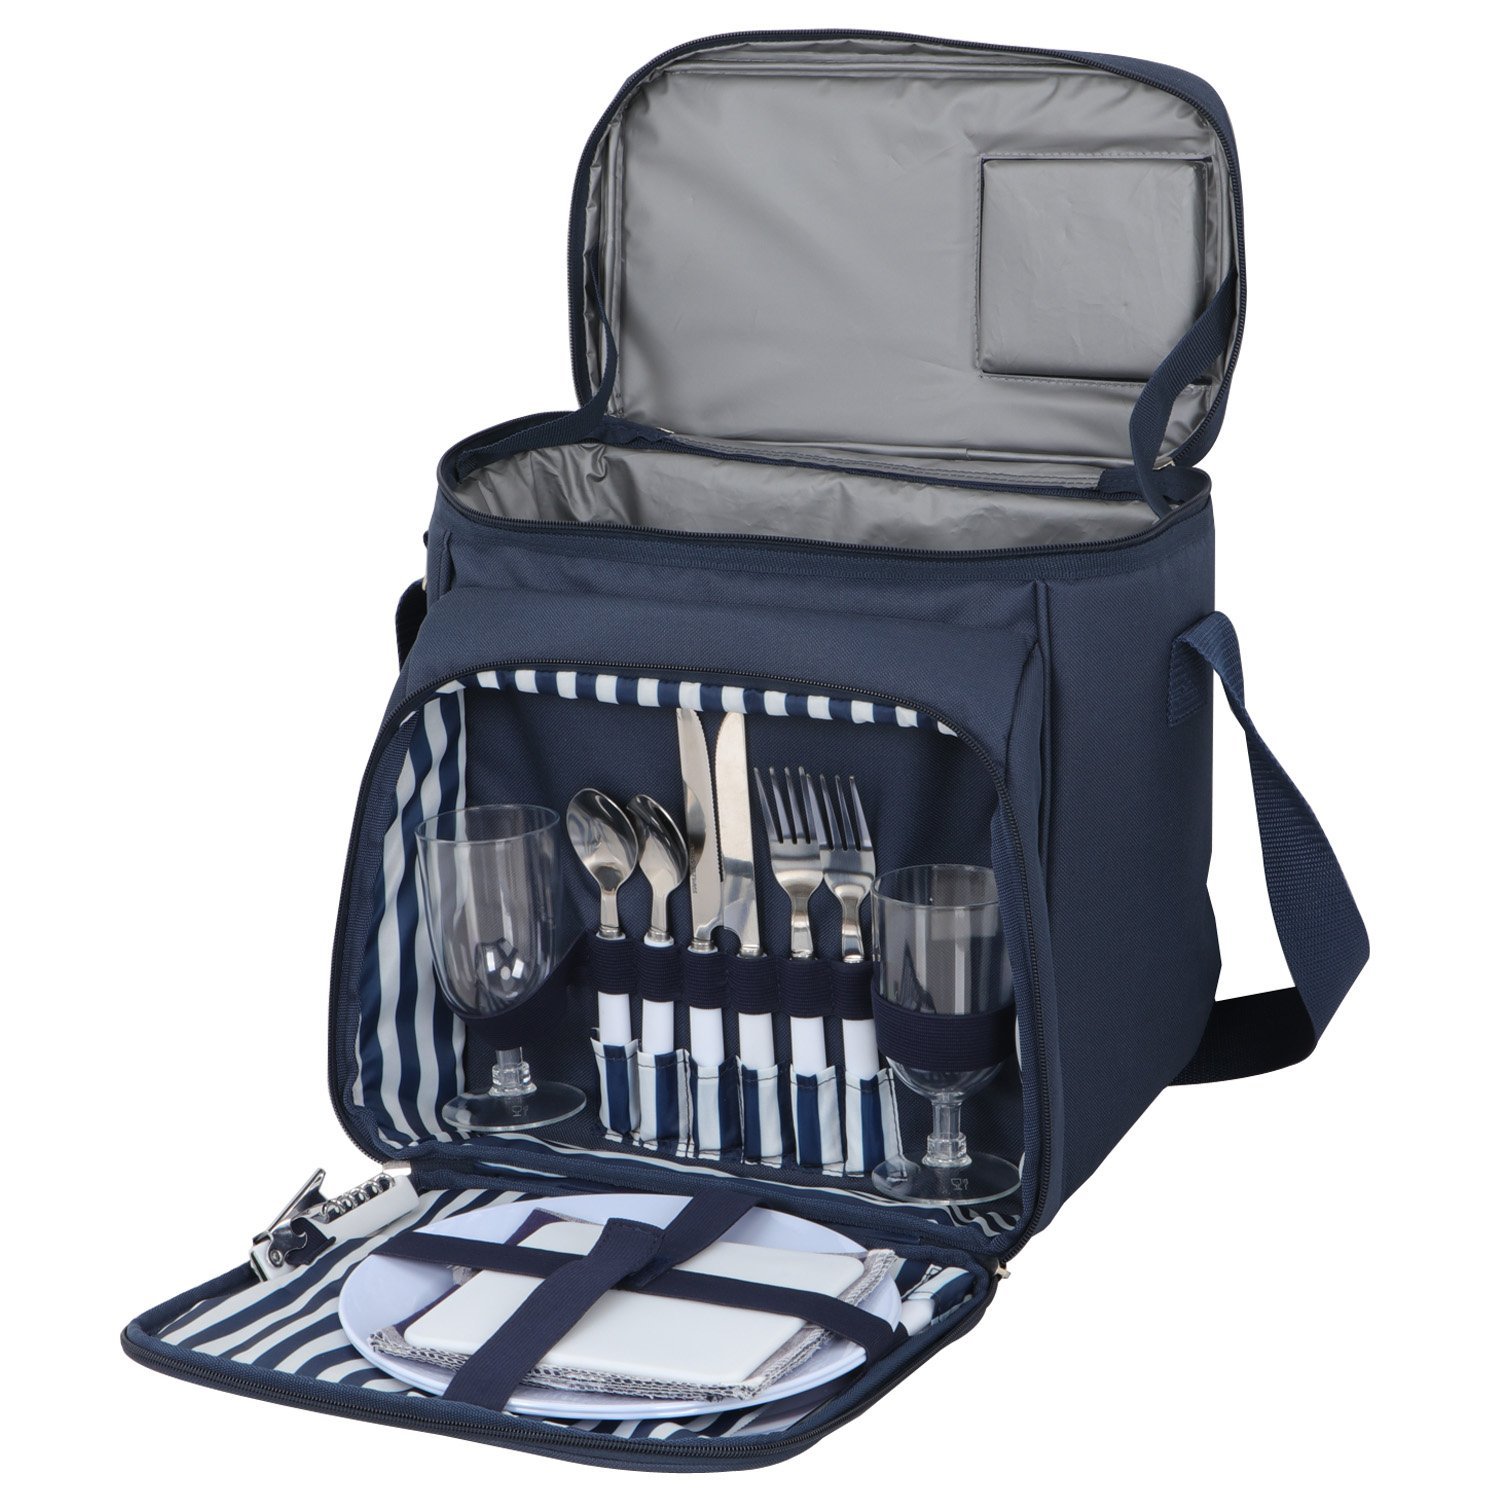 BBBuy Picnic Basket Tote | Picnic Shoulder Bag Set | Stylish All-in-One Portable Picnic Bag for 2 with Complete Cutlery Set